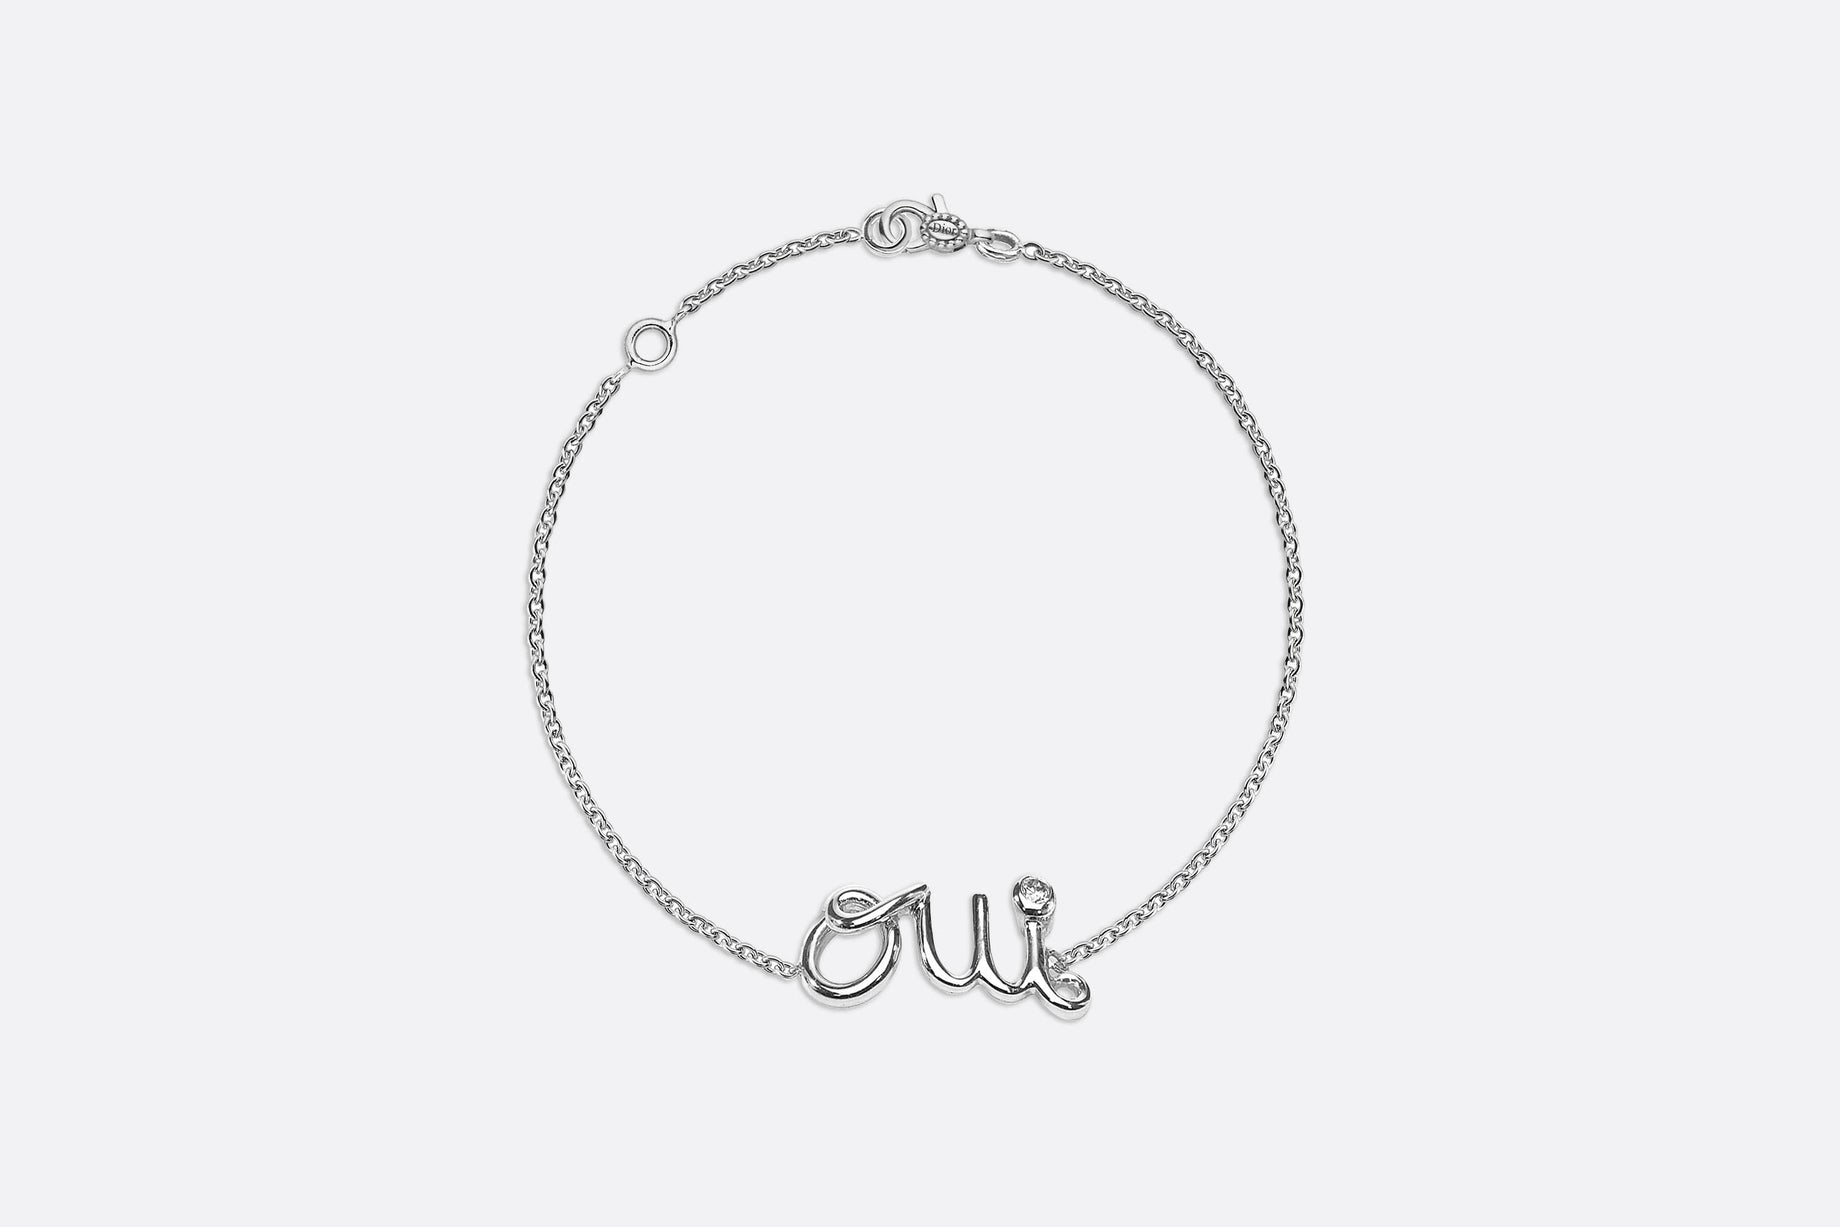 Oui bracelet in 18k white gold and diamond •